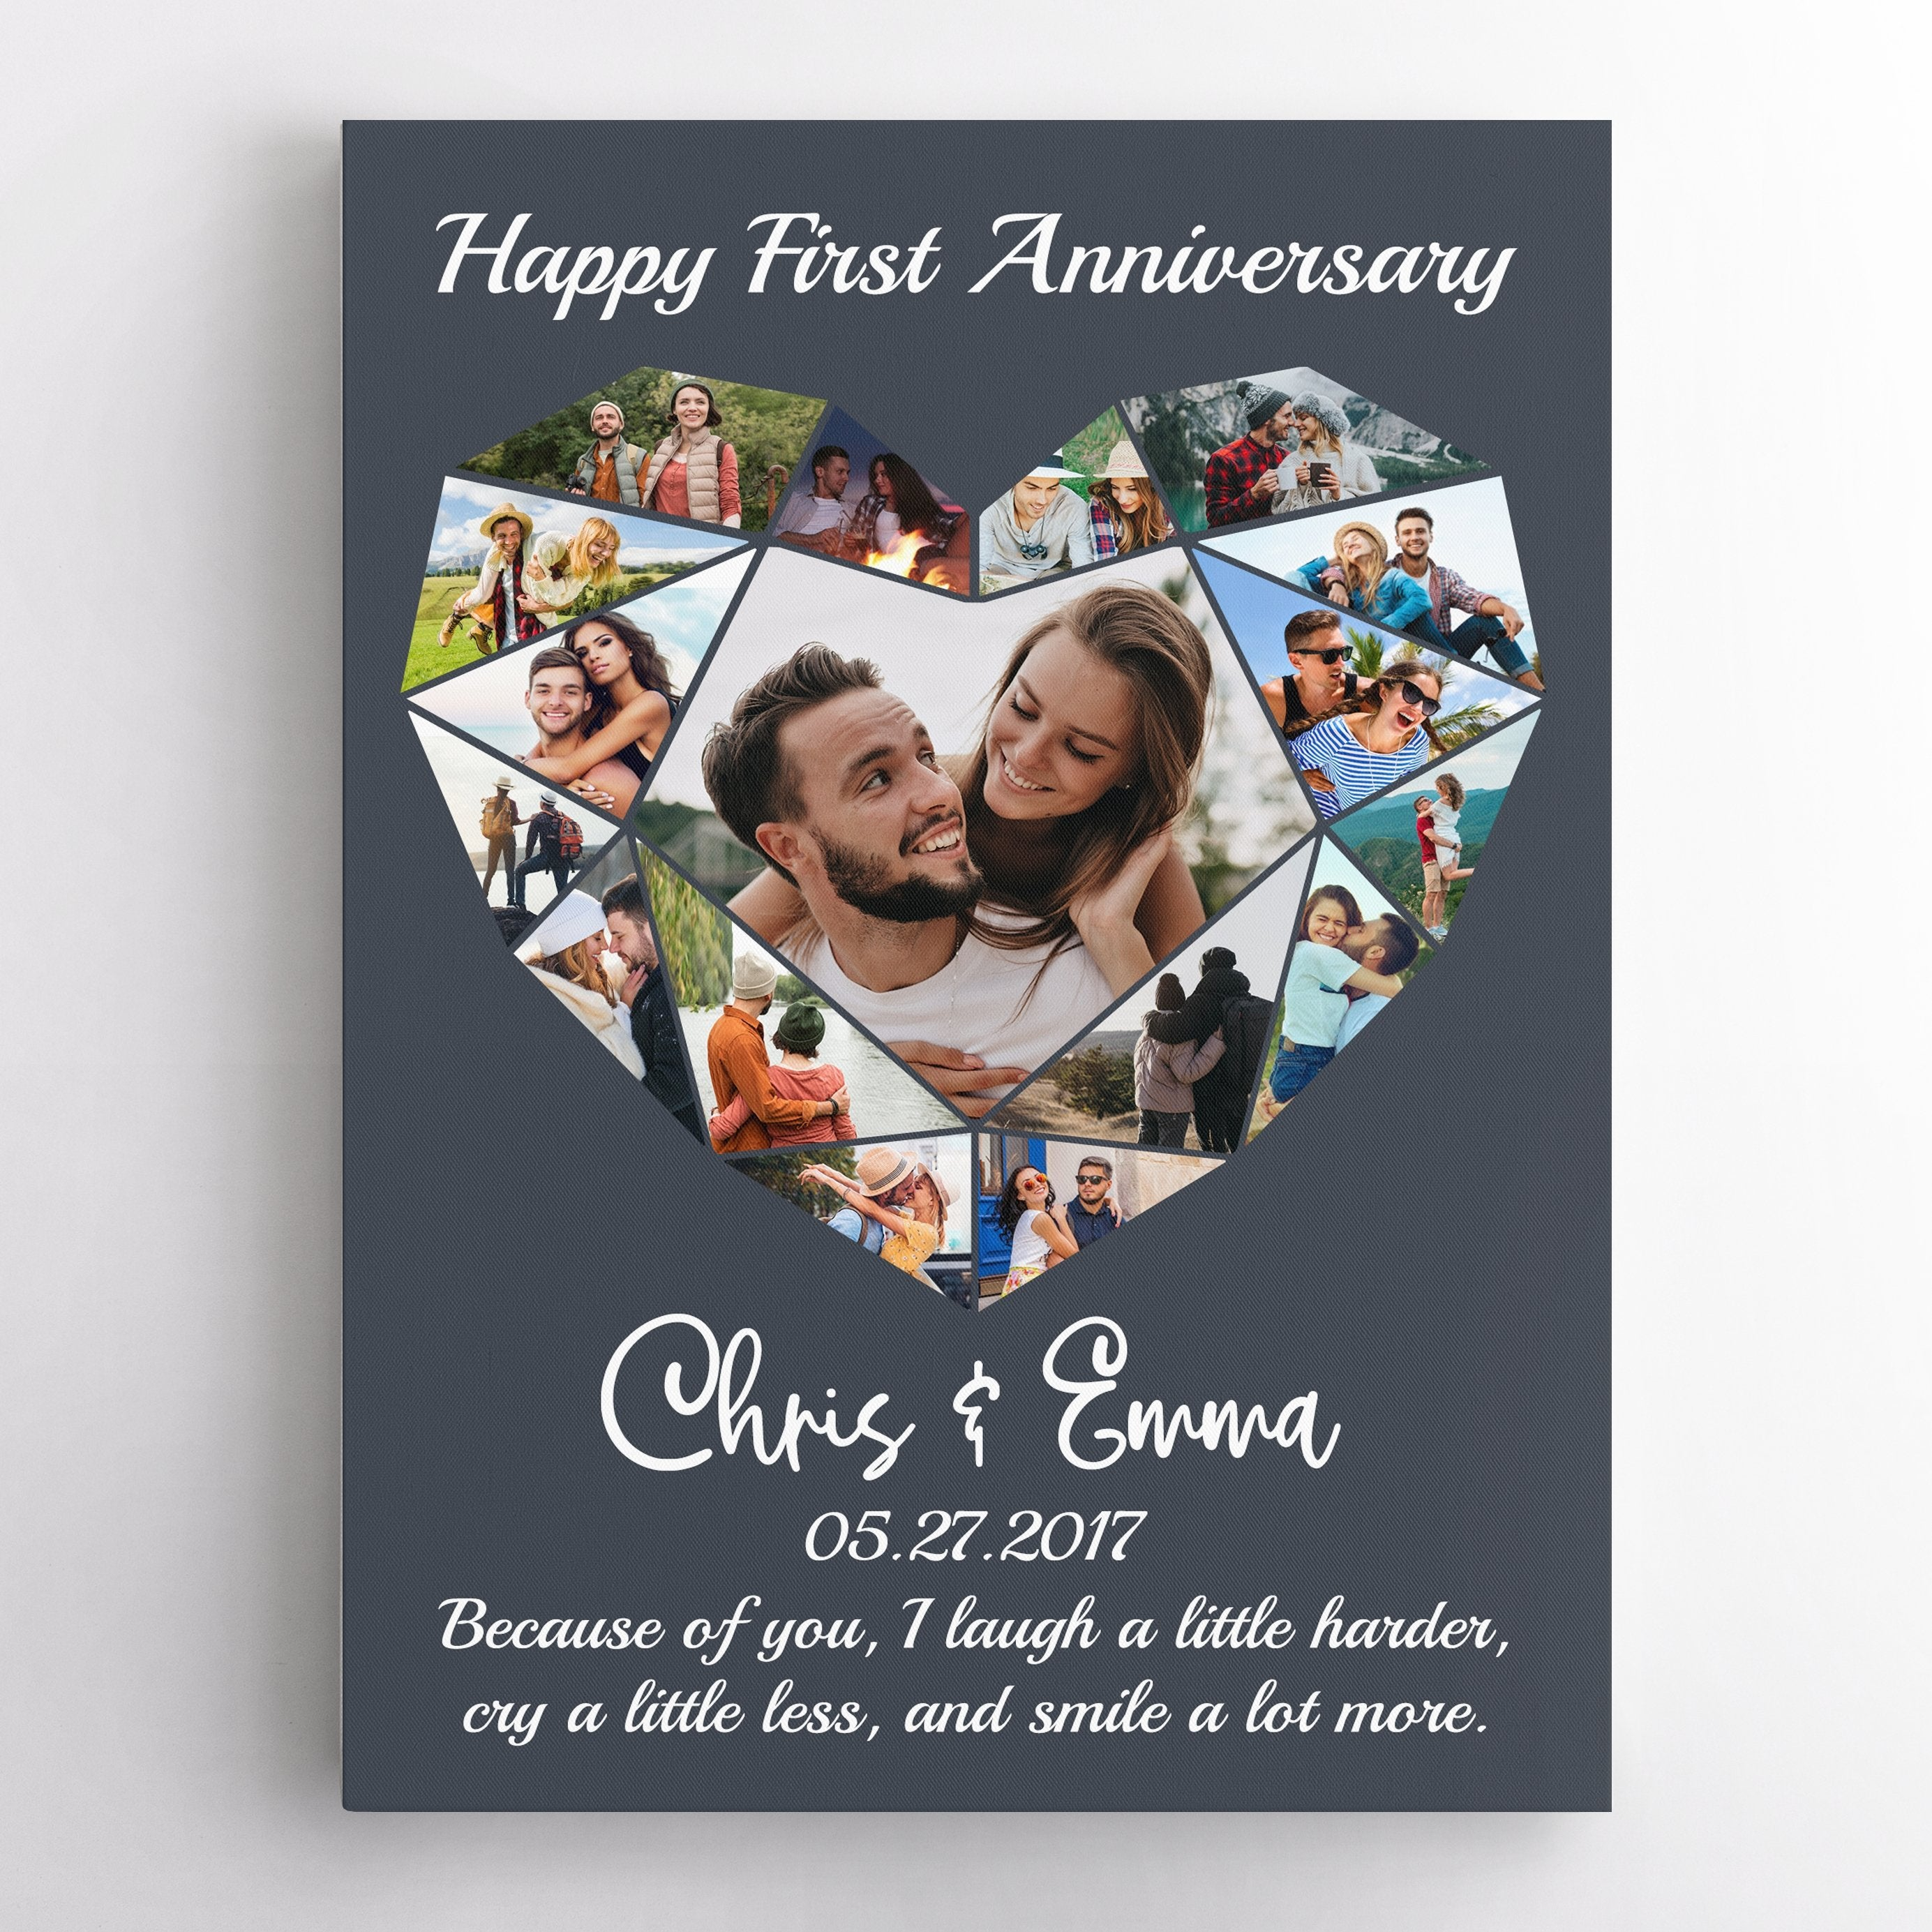 Make your pictures in your camera roll come alive with this photo collage canvas wall art. Simply upload your photos, add names, anniversary date & your favorite love quote to create your own gifts!